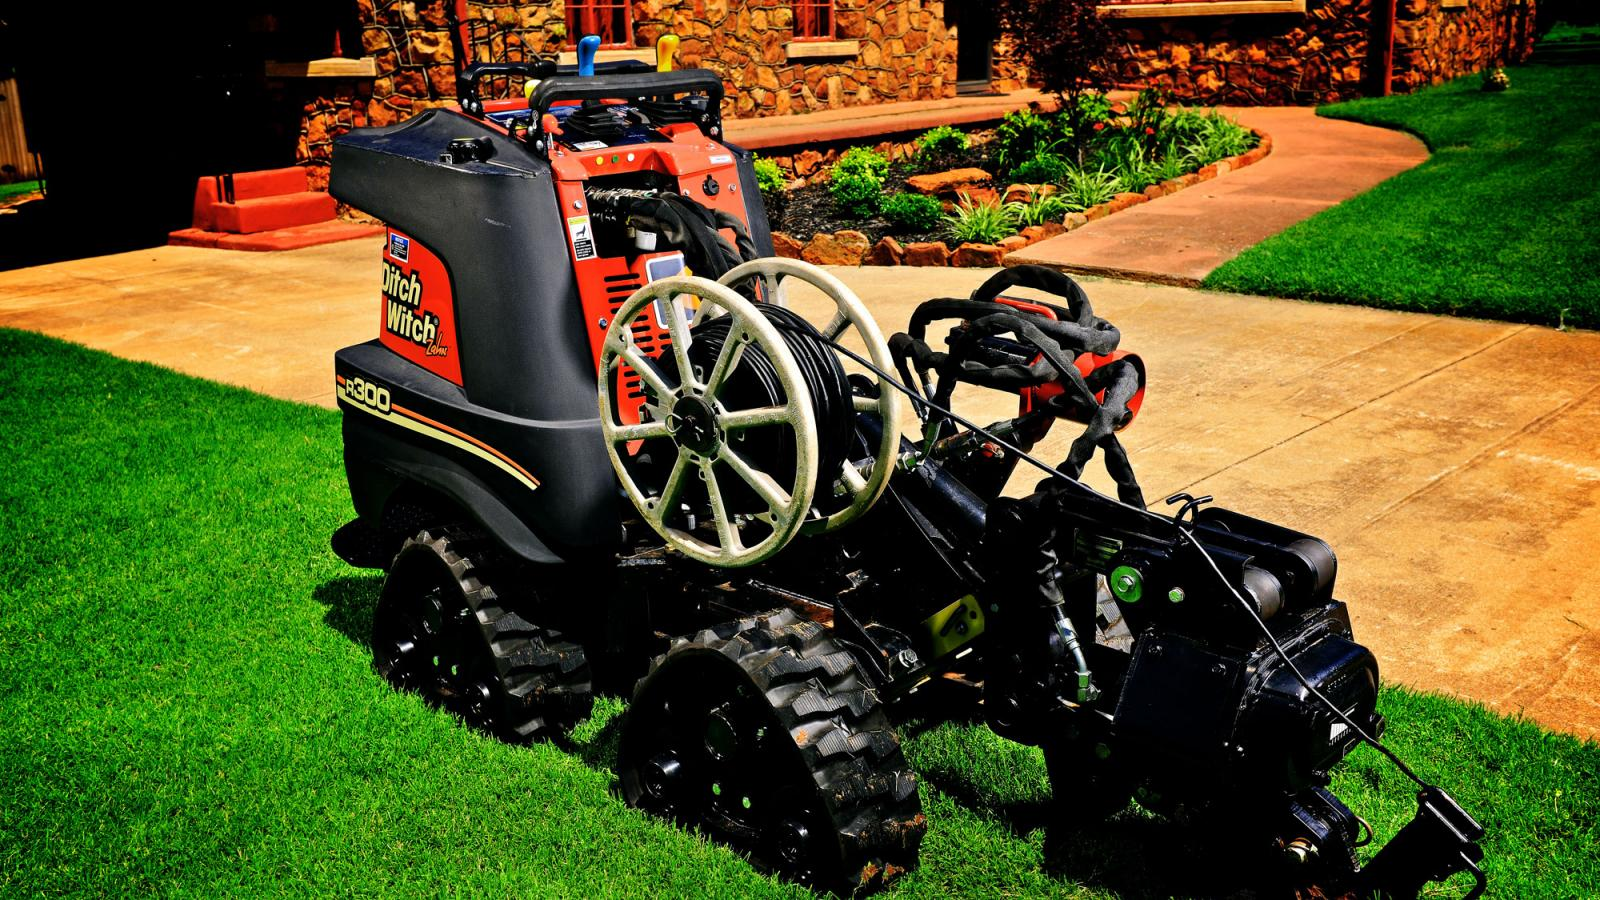 Ditch Witch Zahn® Vibratory Plow